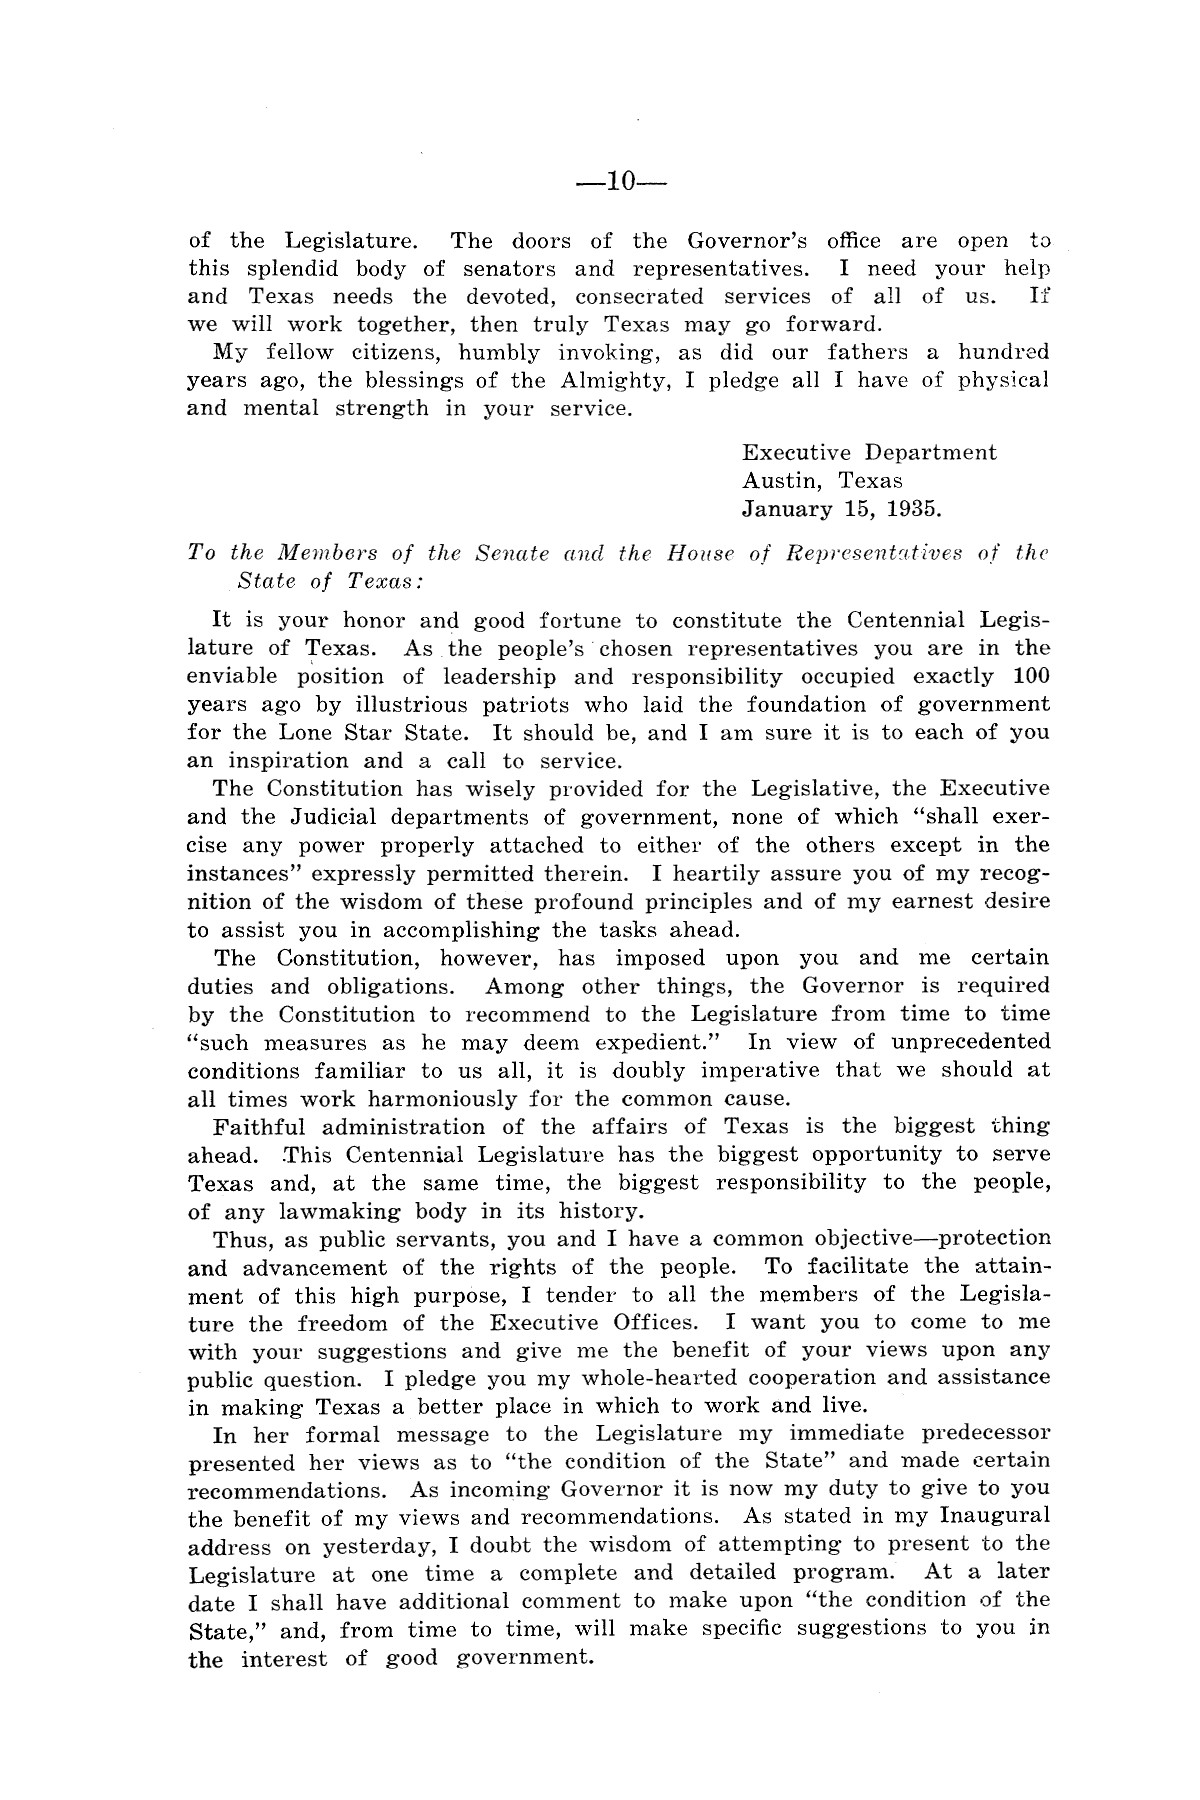 Legislative Messages of Hon. James V. Allred, Governor of Texas 1935-1939                                                                                                      [Sequence #]: 9 of 263